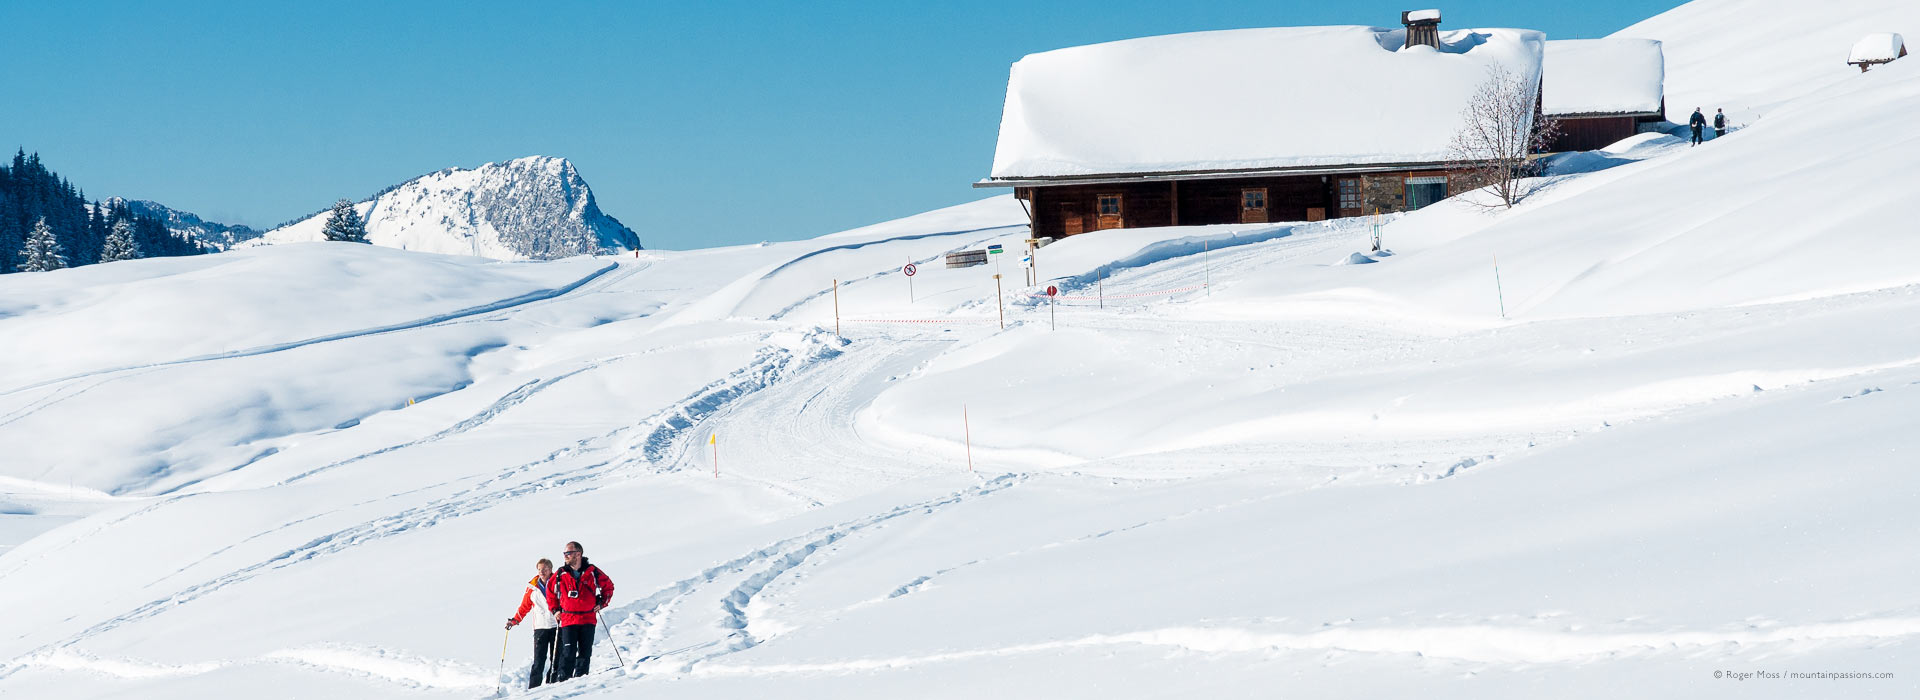 Snow-shoeing on mountain with traditional chalet, La Toussuire, French Alps